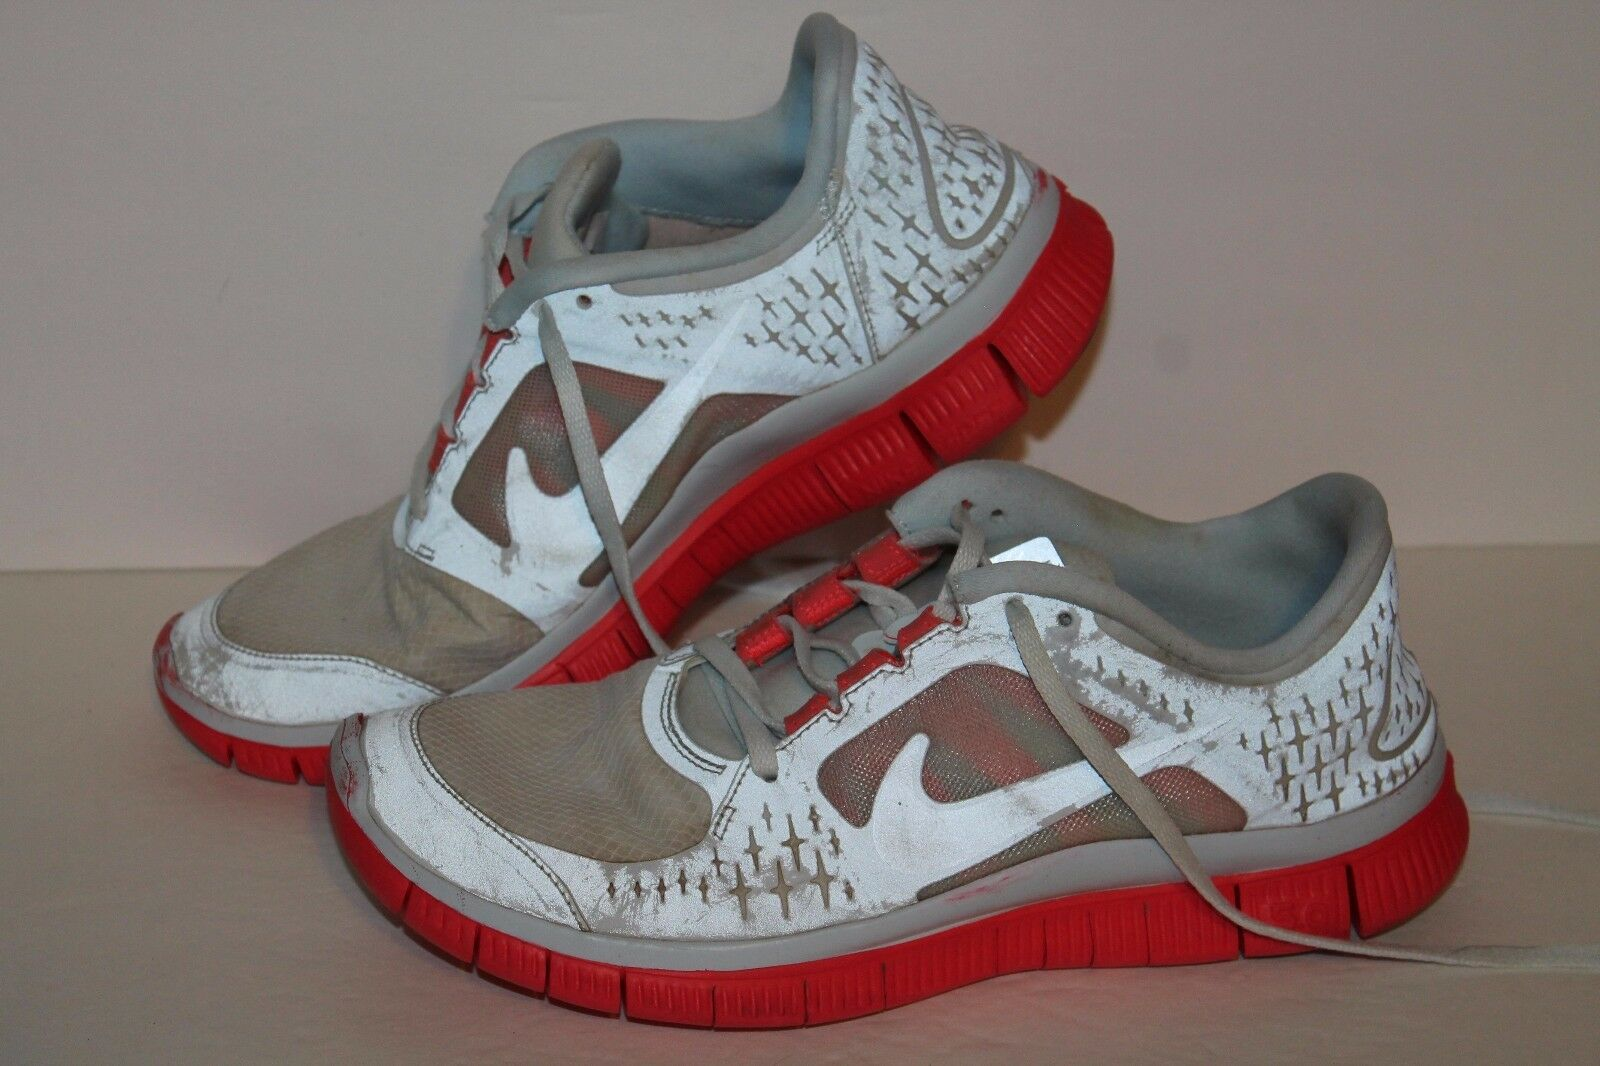 Nike Free Run 3 + Running Shoes,H2O Repel Lt Bue Tint/Pink, Women's 9.5 best-selling model of the brand